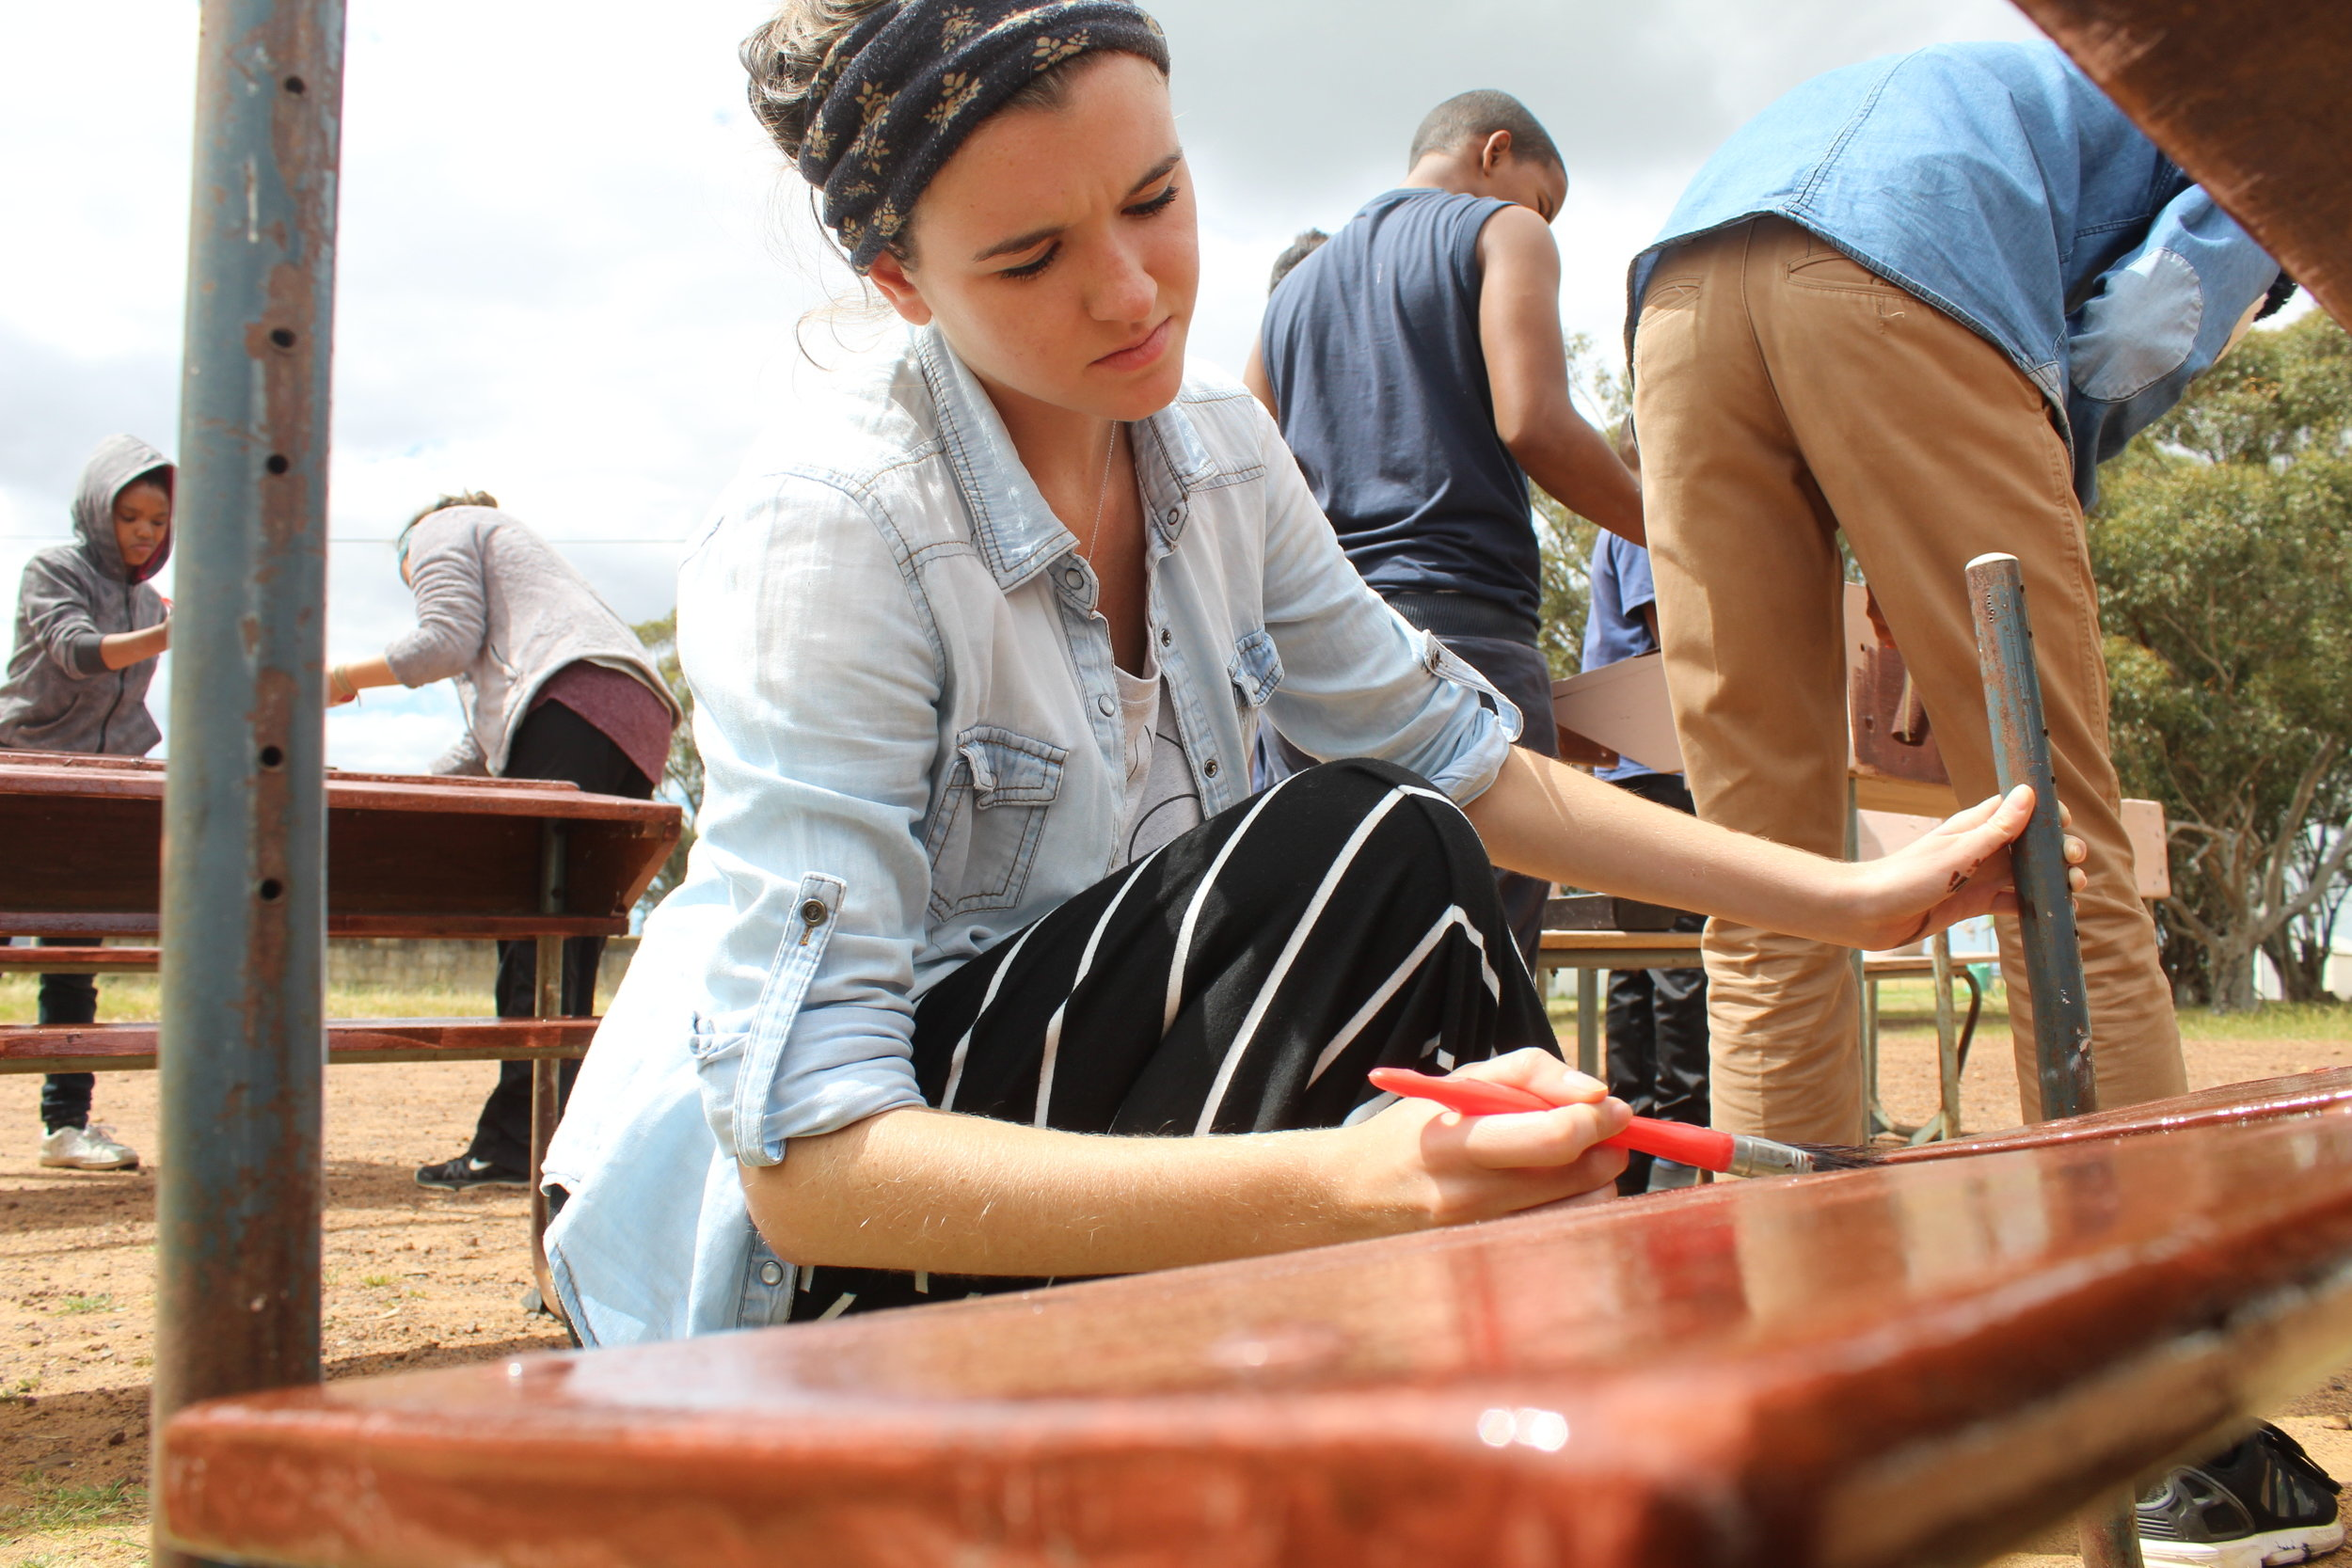 Darling, South Africa - Our team in 2017 helped to dust, sand, and paint more than 30 desks for the school kids to use.